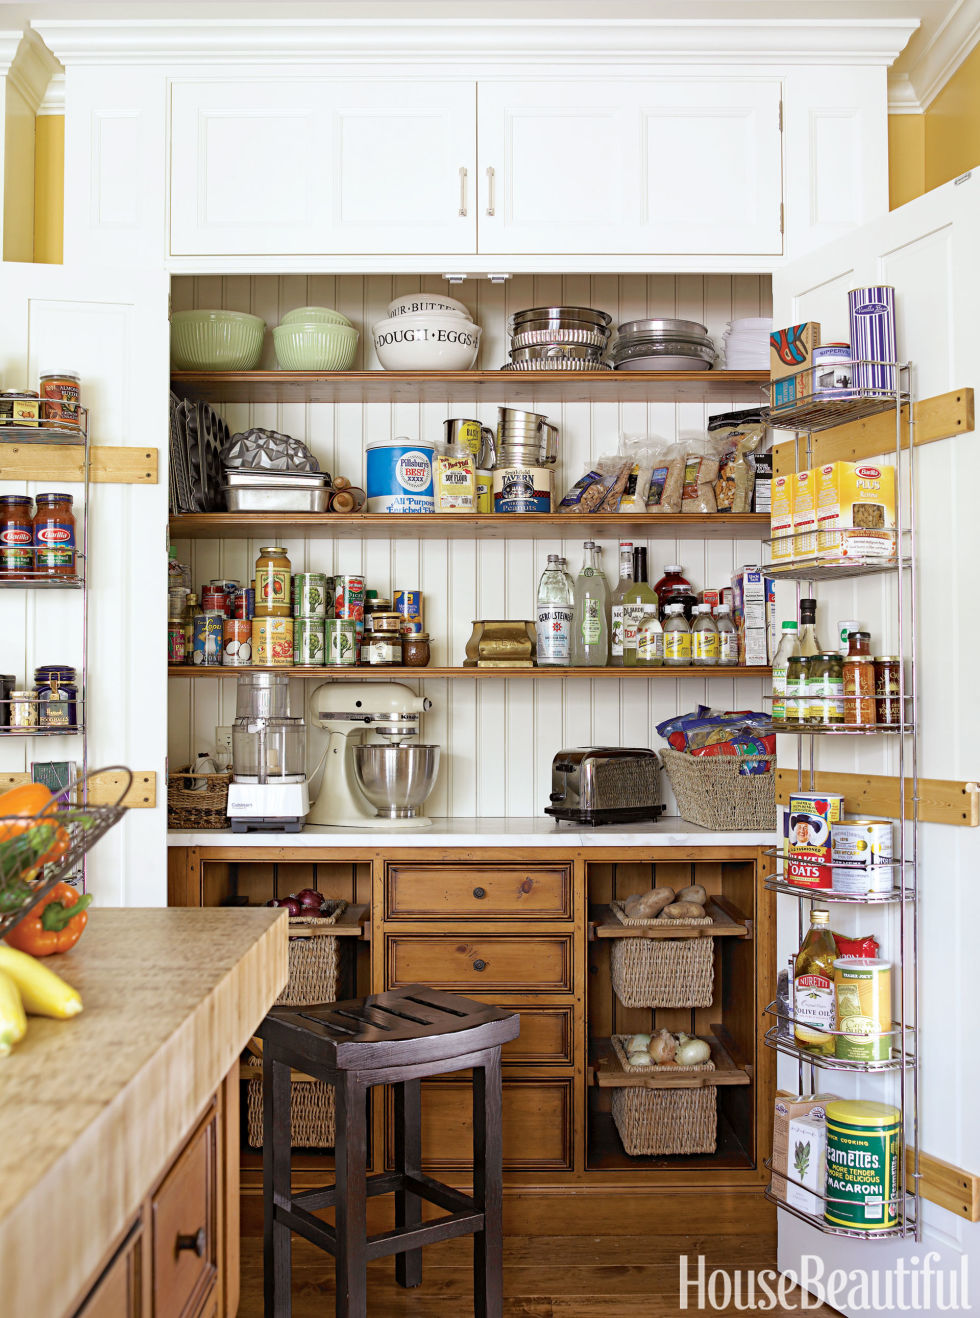 Small Kitchen Storage 20 unique kitchen storage ideas - easy storage solutions for kitchens